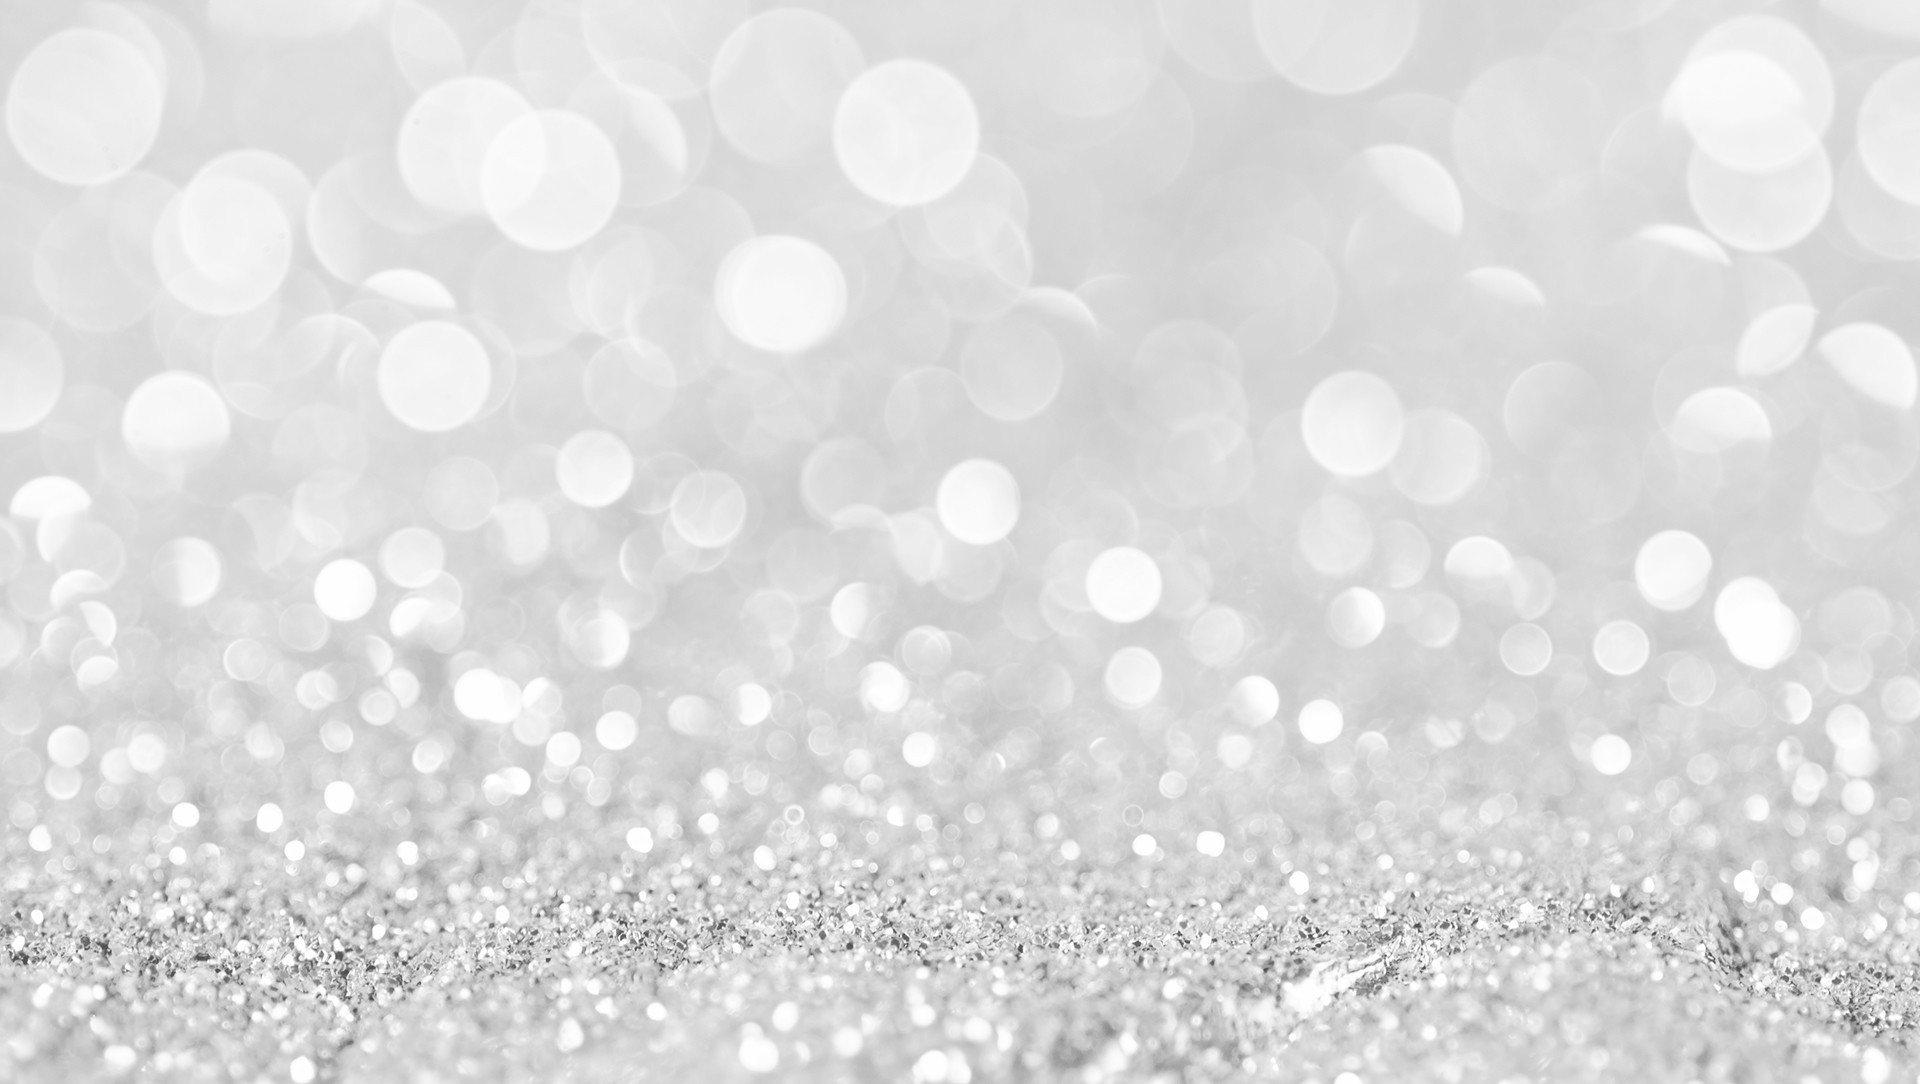 Sparkle Iphone Wallpaper 67 Images